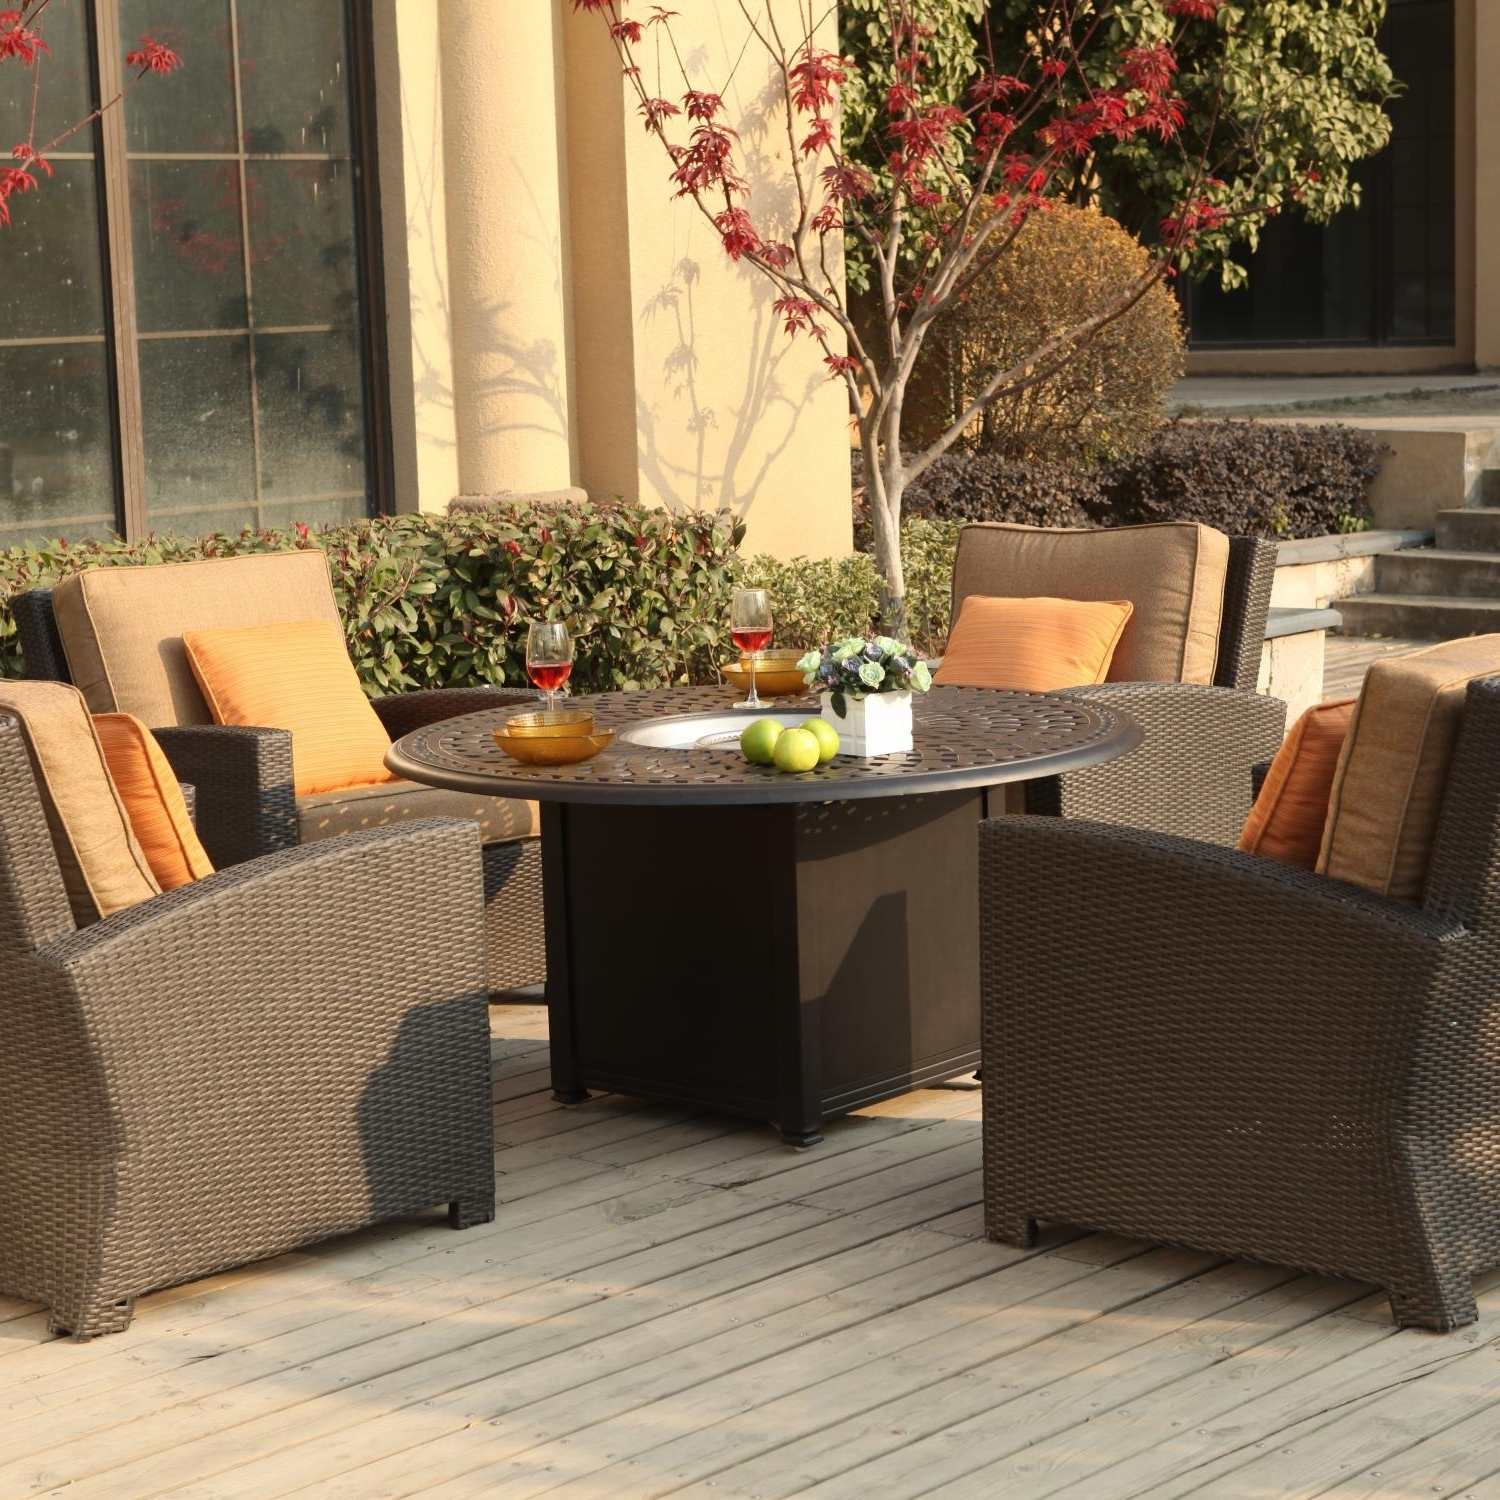 Recent Patio Conversation Sets With Fire Pit Within Darlee Vienna 5 Piece Resin Wicker Patio Fire Pit Set (View 14 of 15)